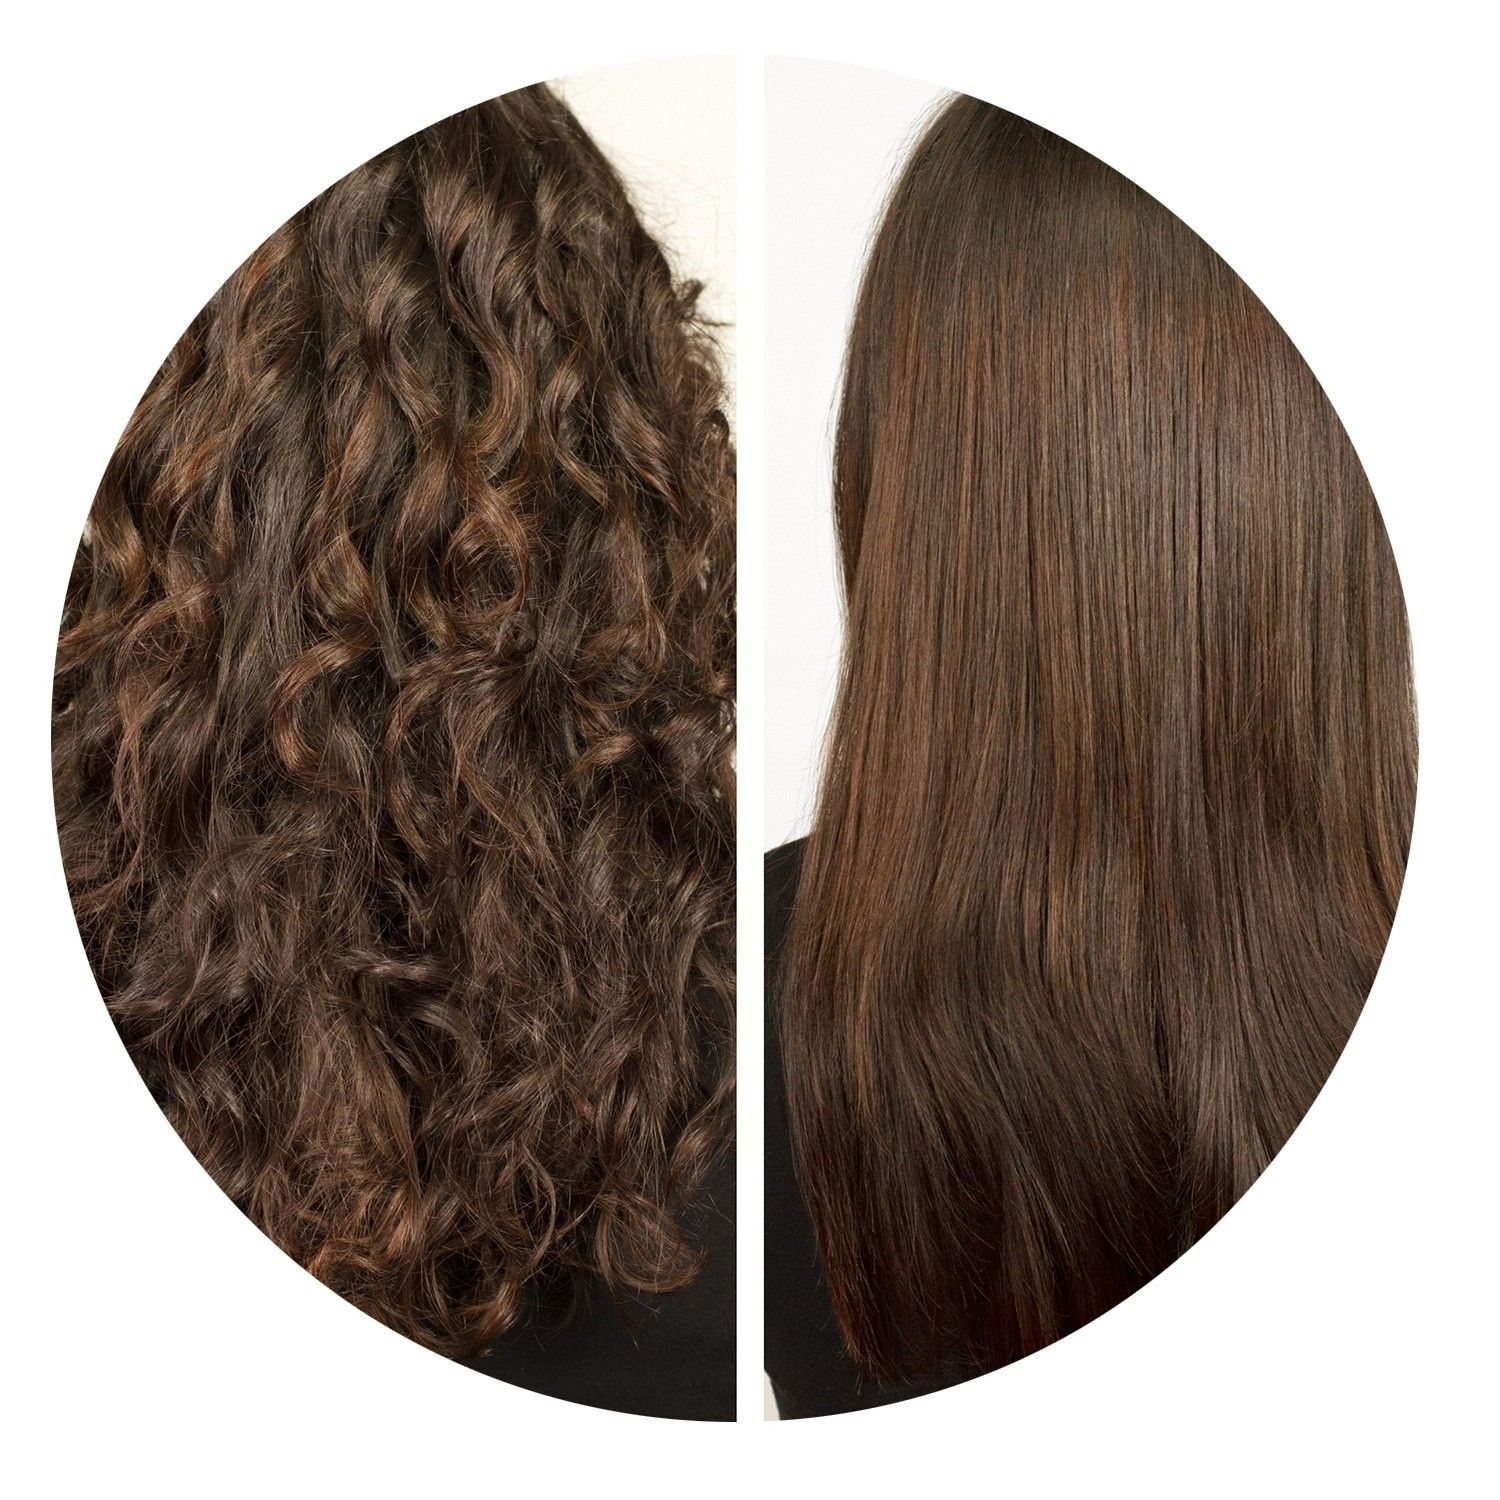 Hair Botox and Brazilian Keratin Treatment: What's the difference?